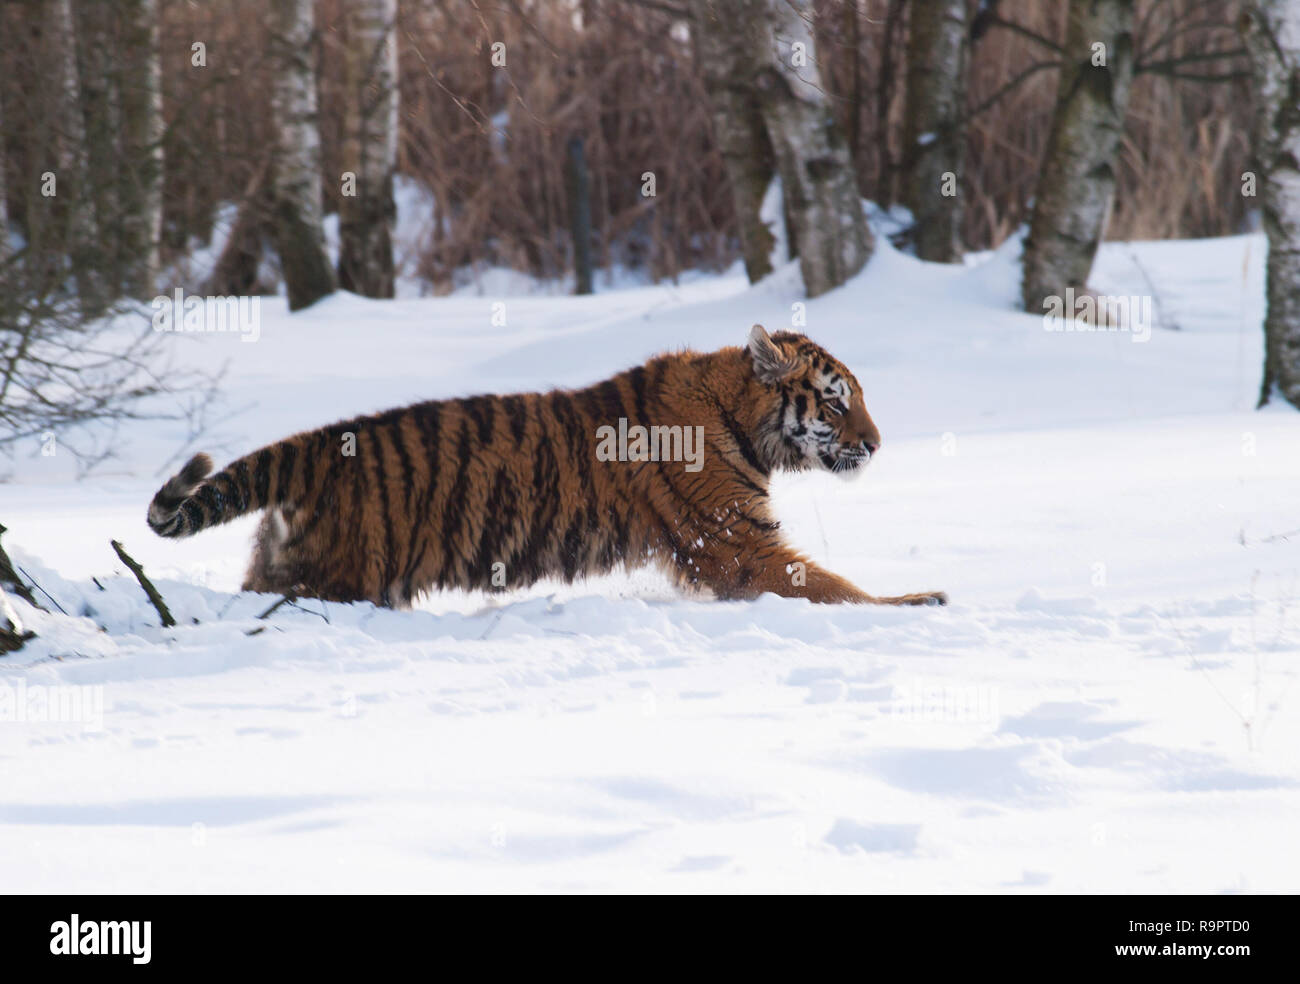 Siberian tiger - Panthera tigris altaica - in winter forest - Stock Image